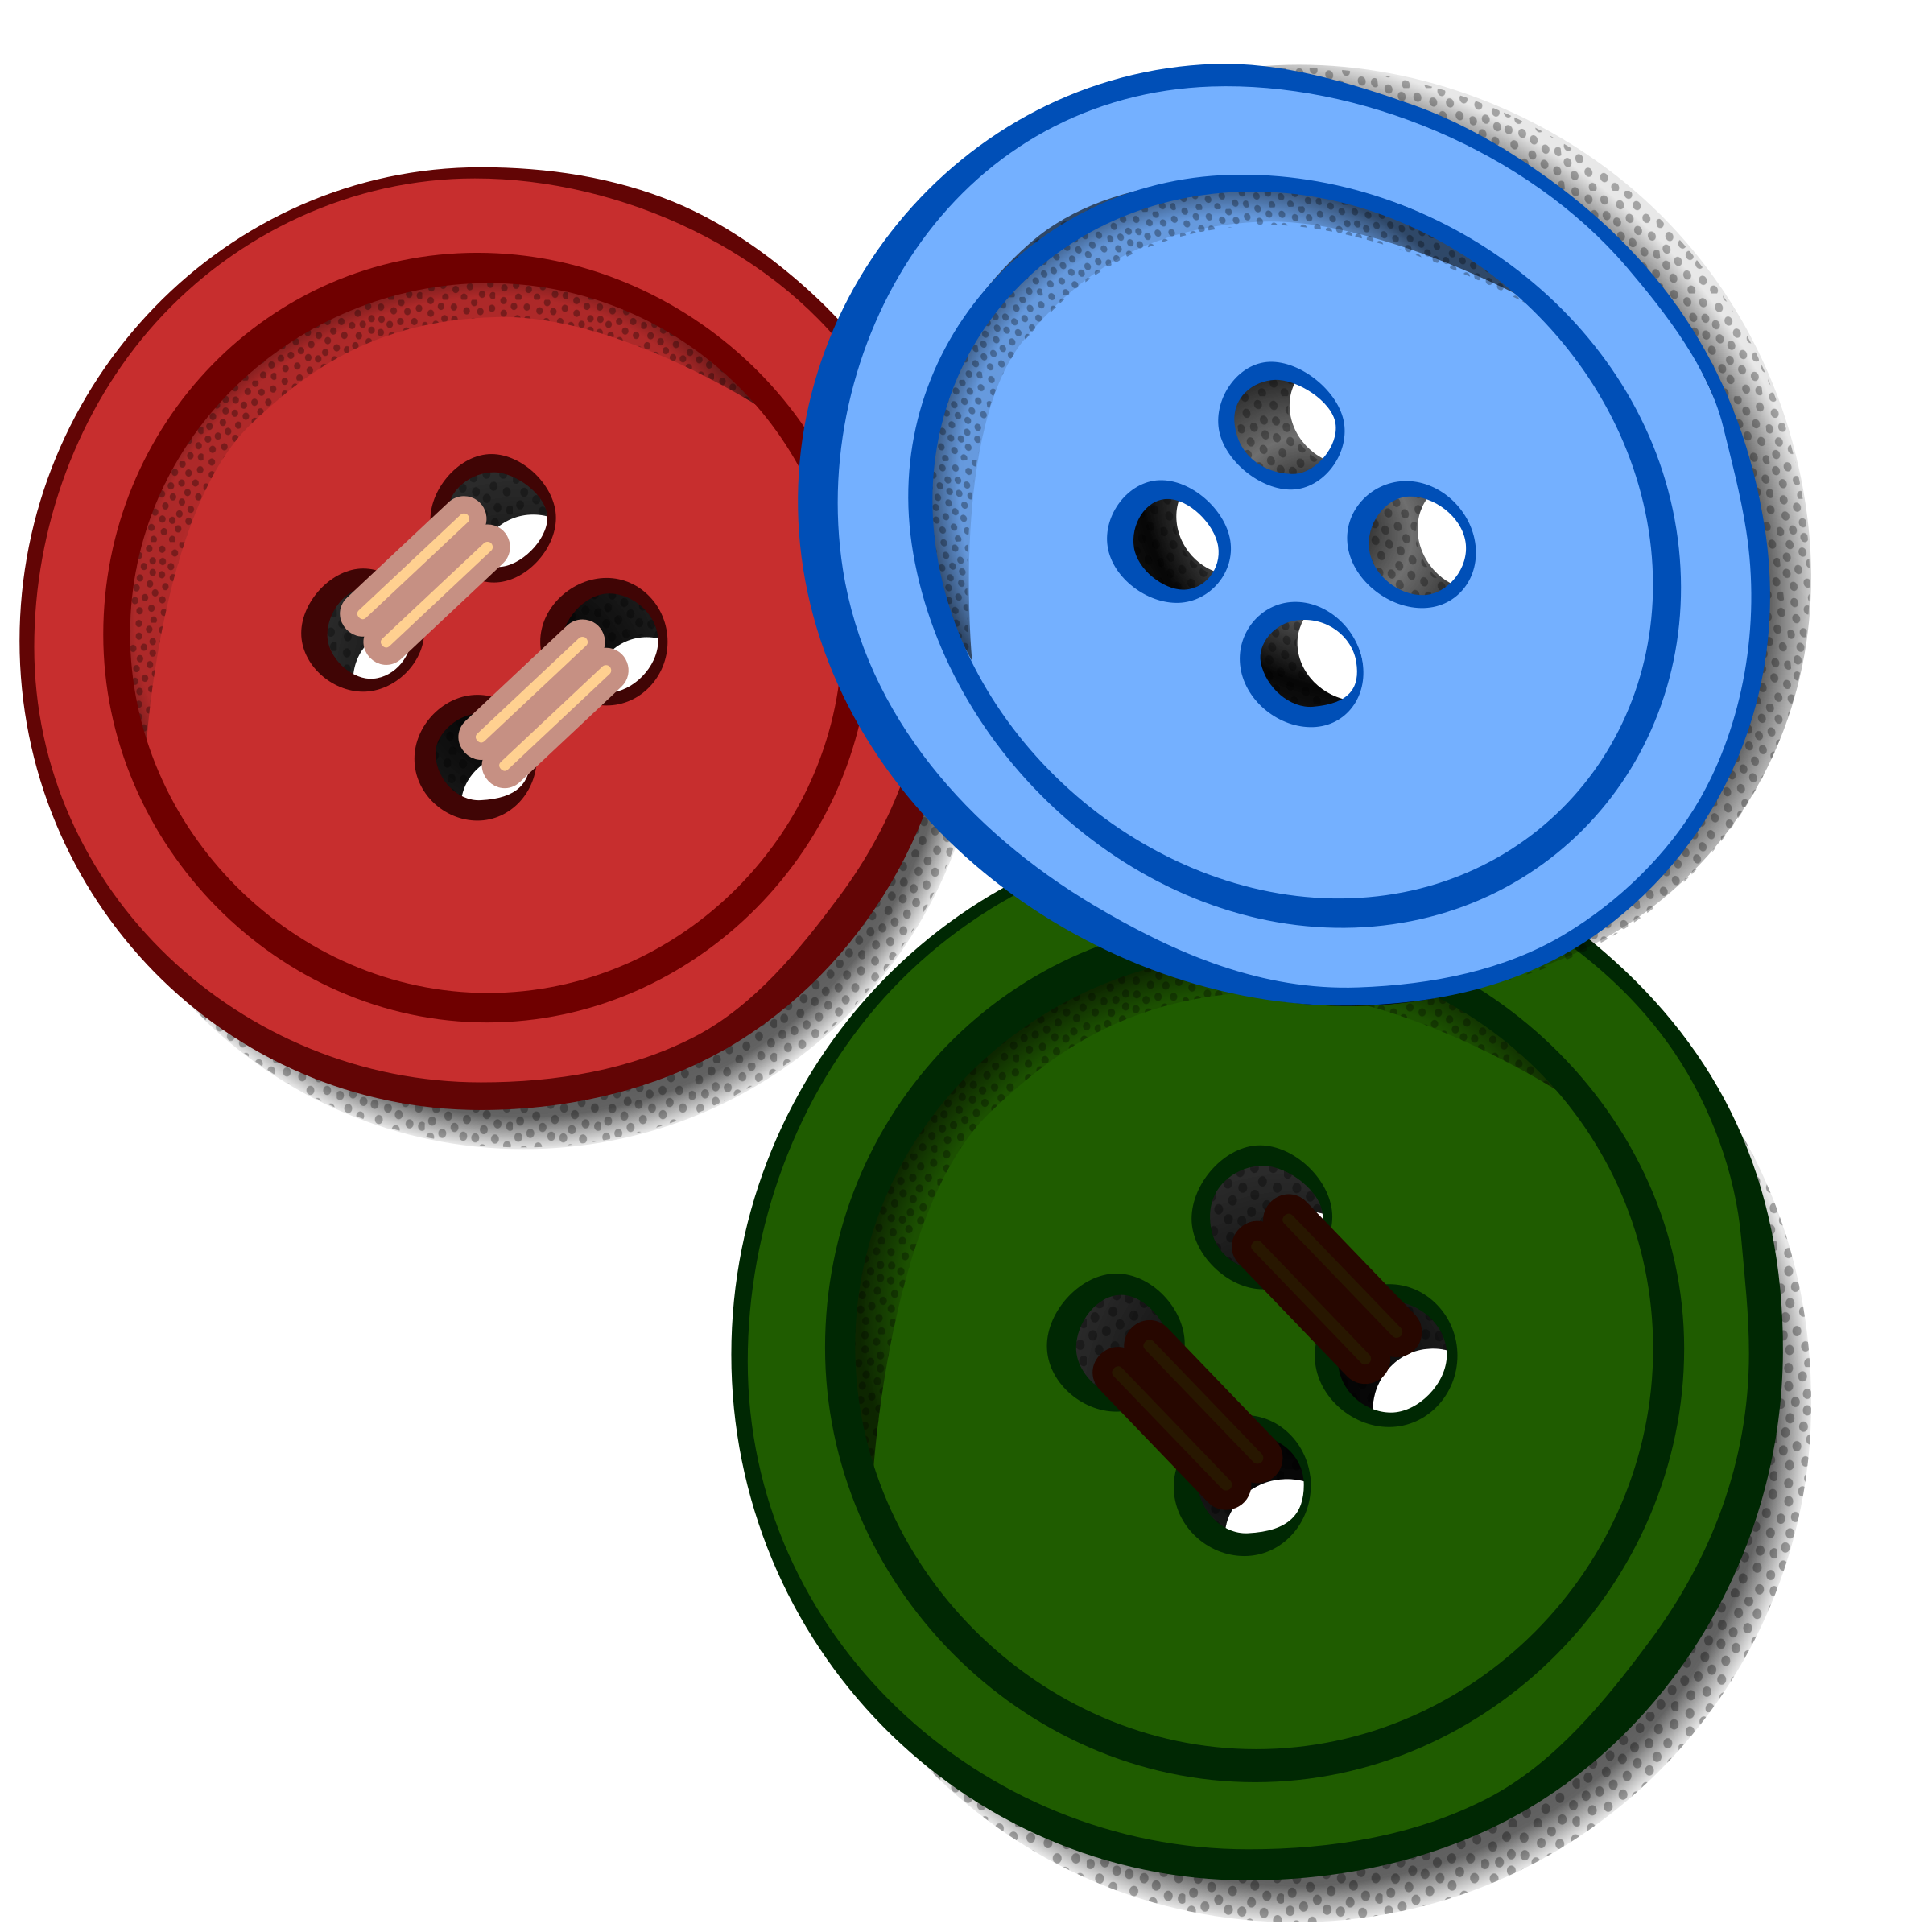 vector stock Buttons clipart. Coloured big image png